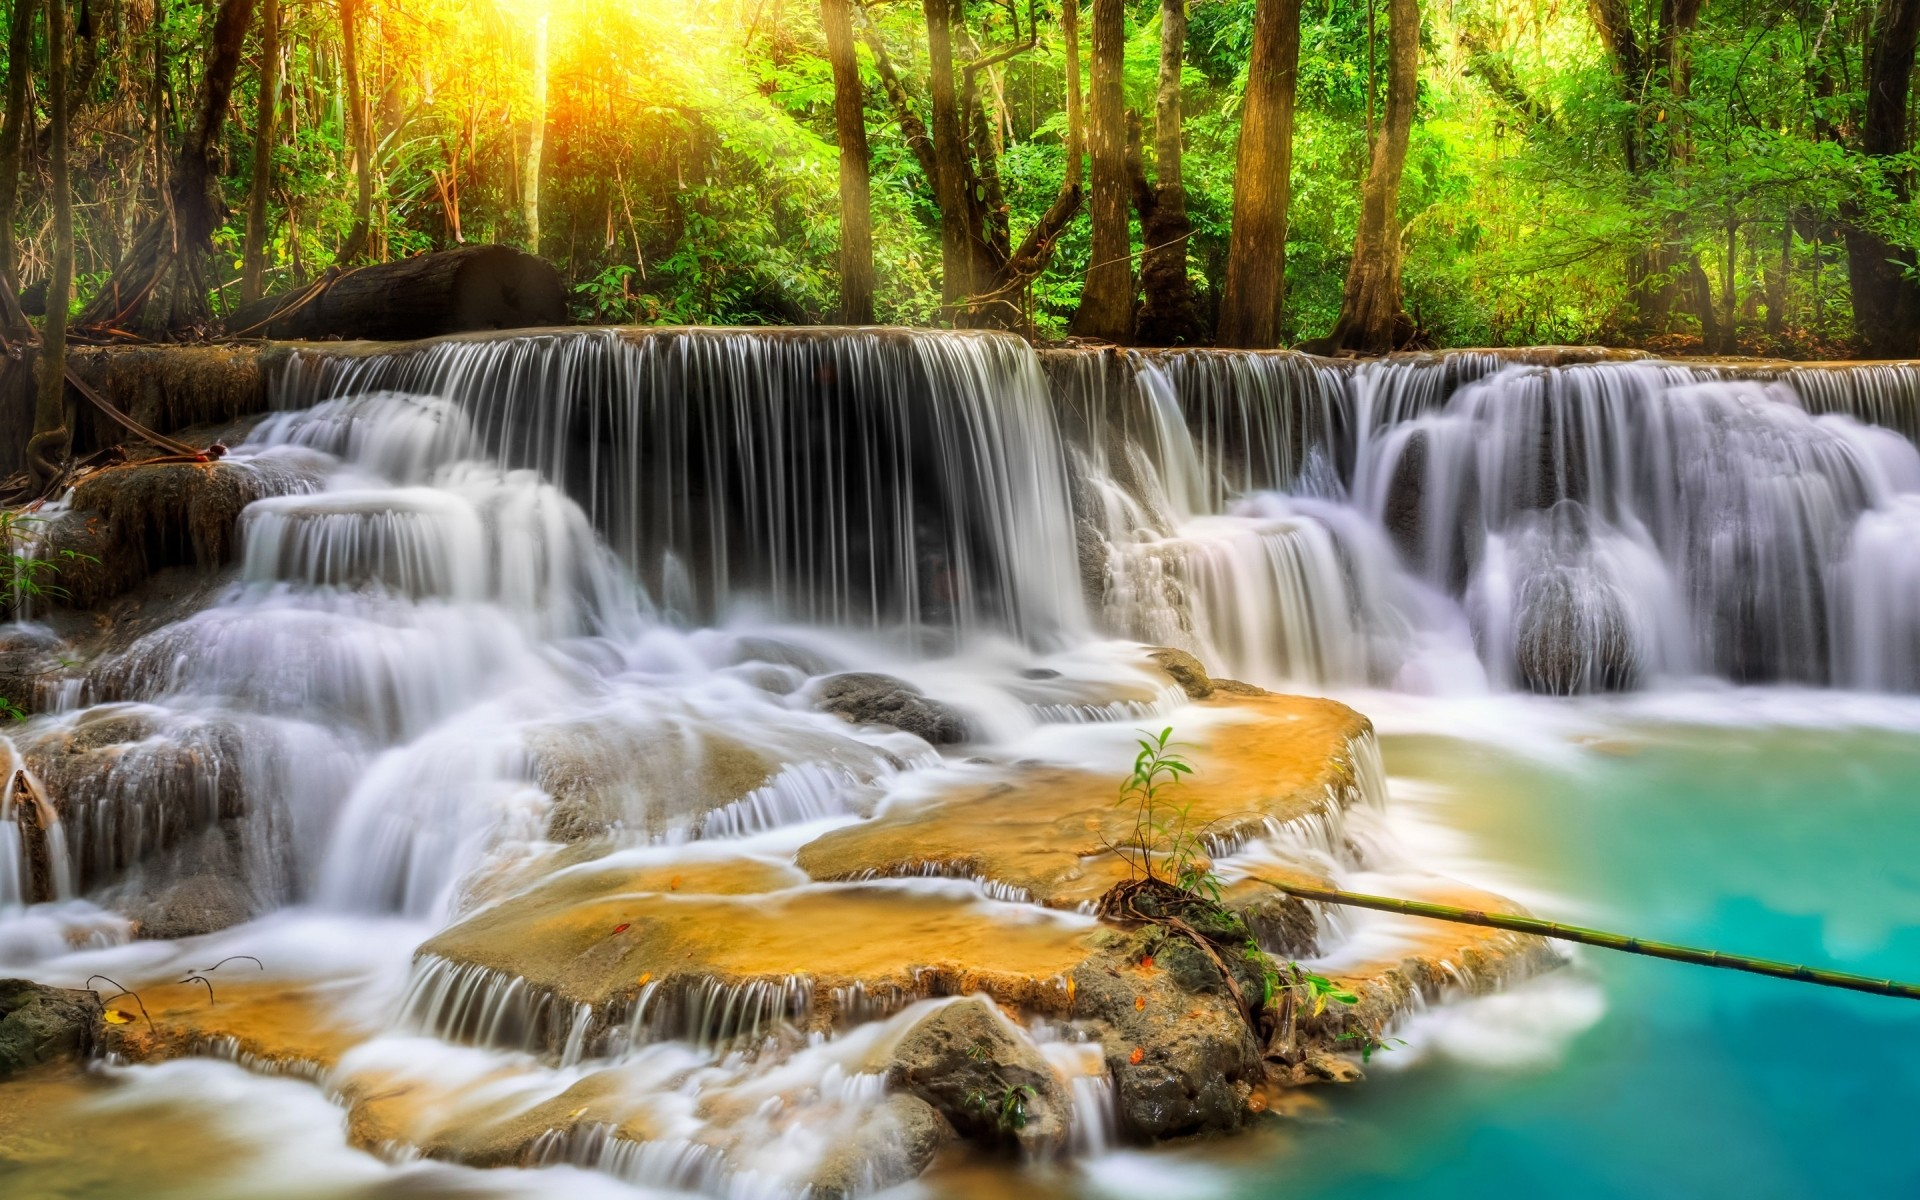 other city waterfall water river stream nature cascade flow wood fall motion leaf creek travel rock splash photograph wild wet landscape thailand forest